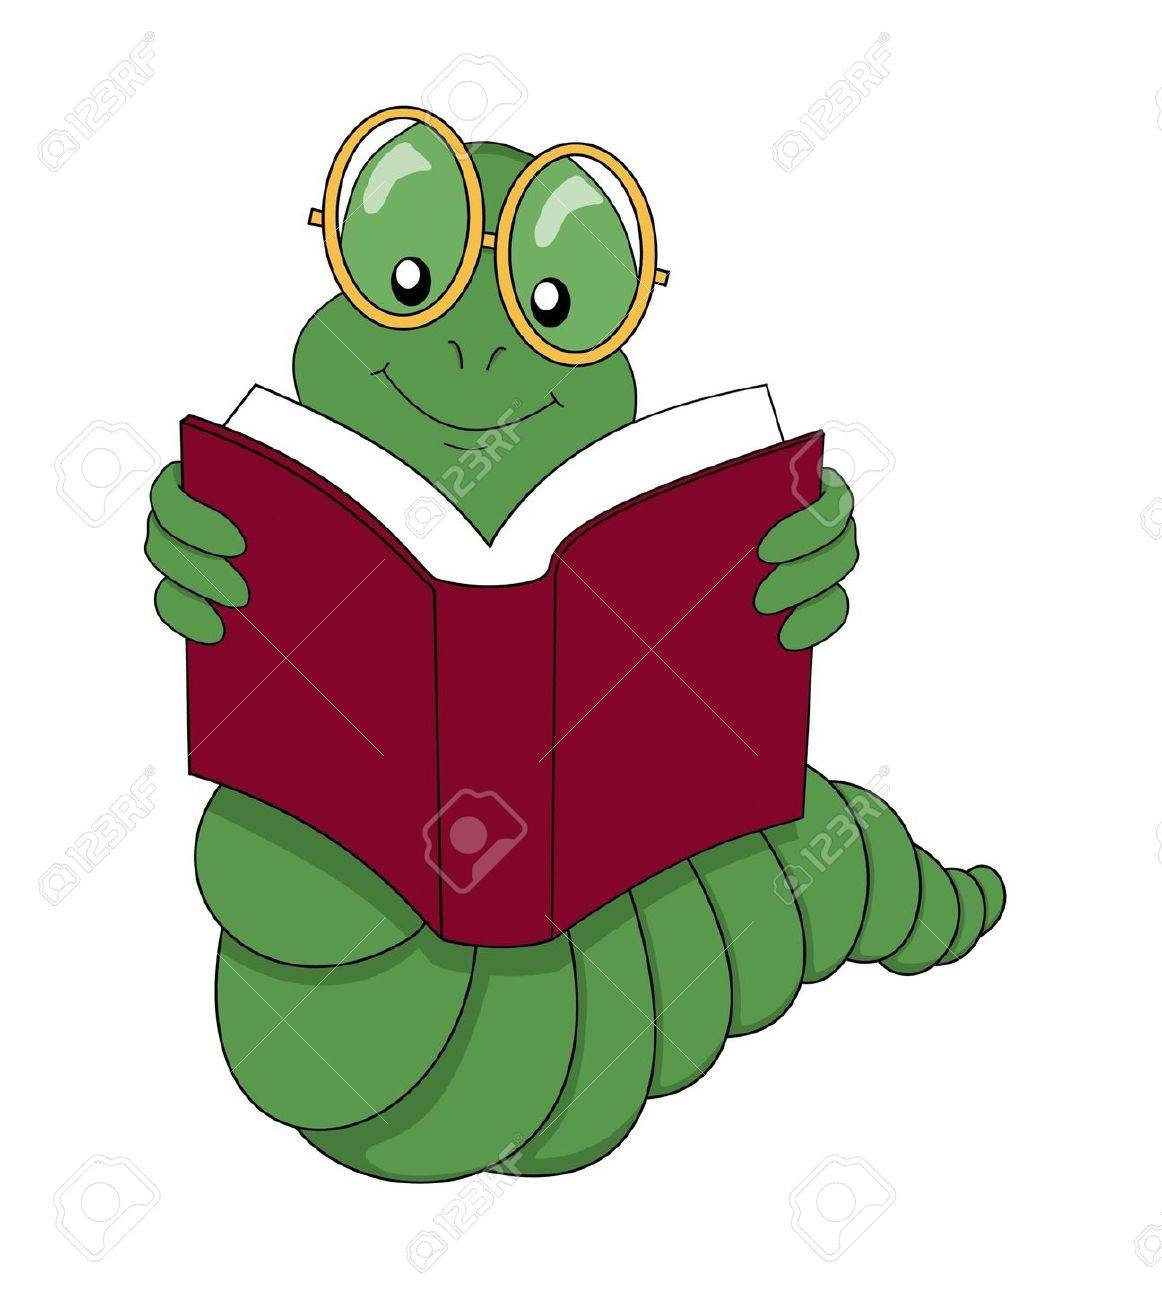 Reading Bookworm Clipart Bookworm Reading a Book Over a